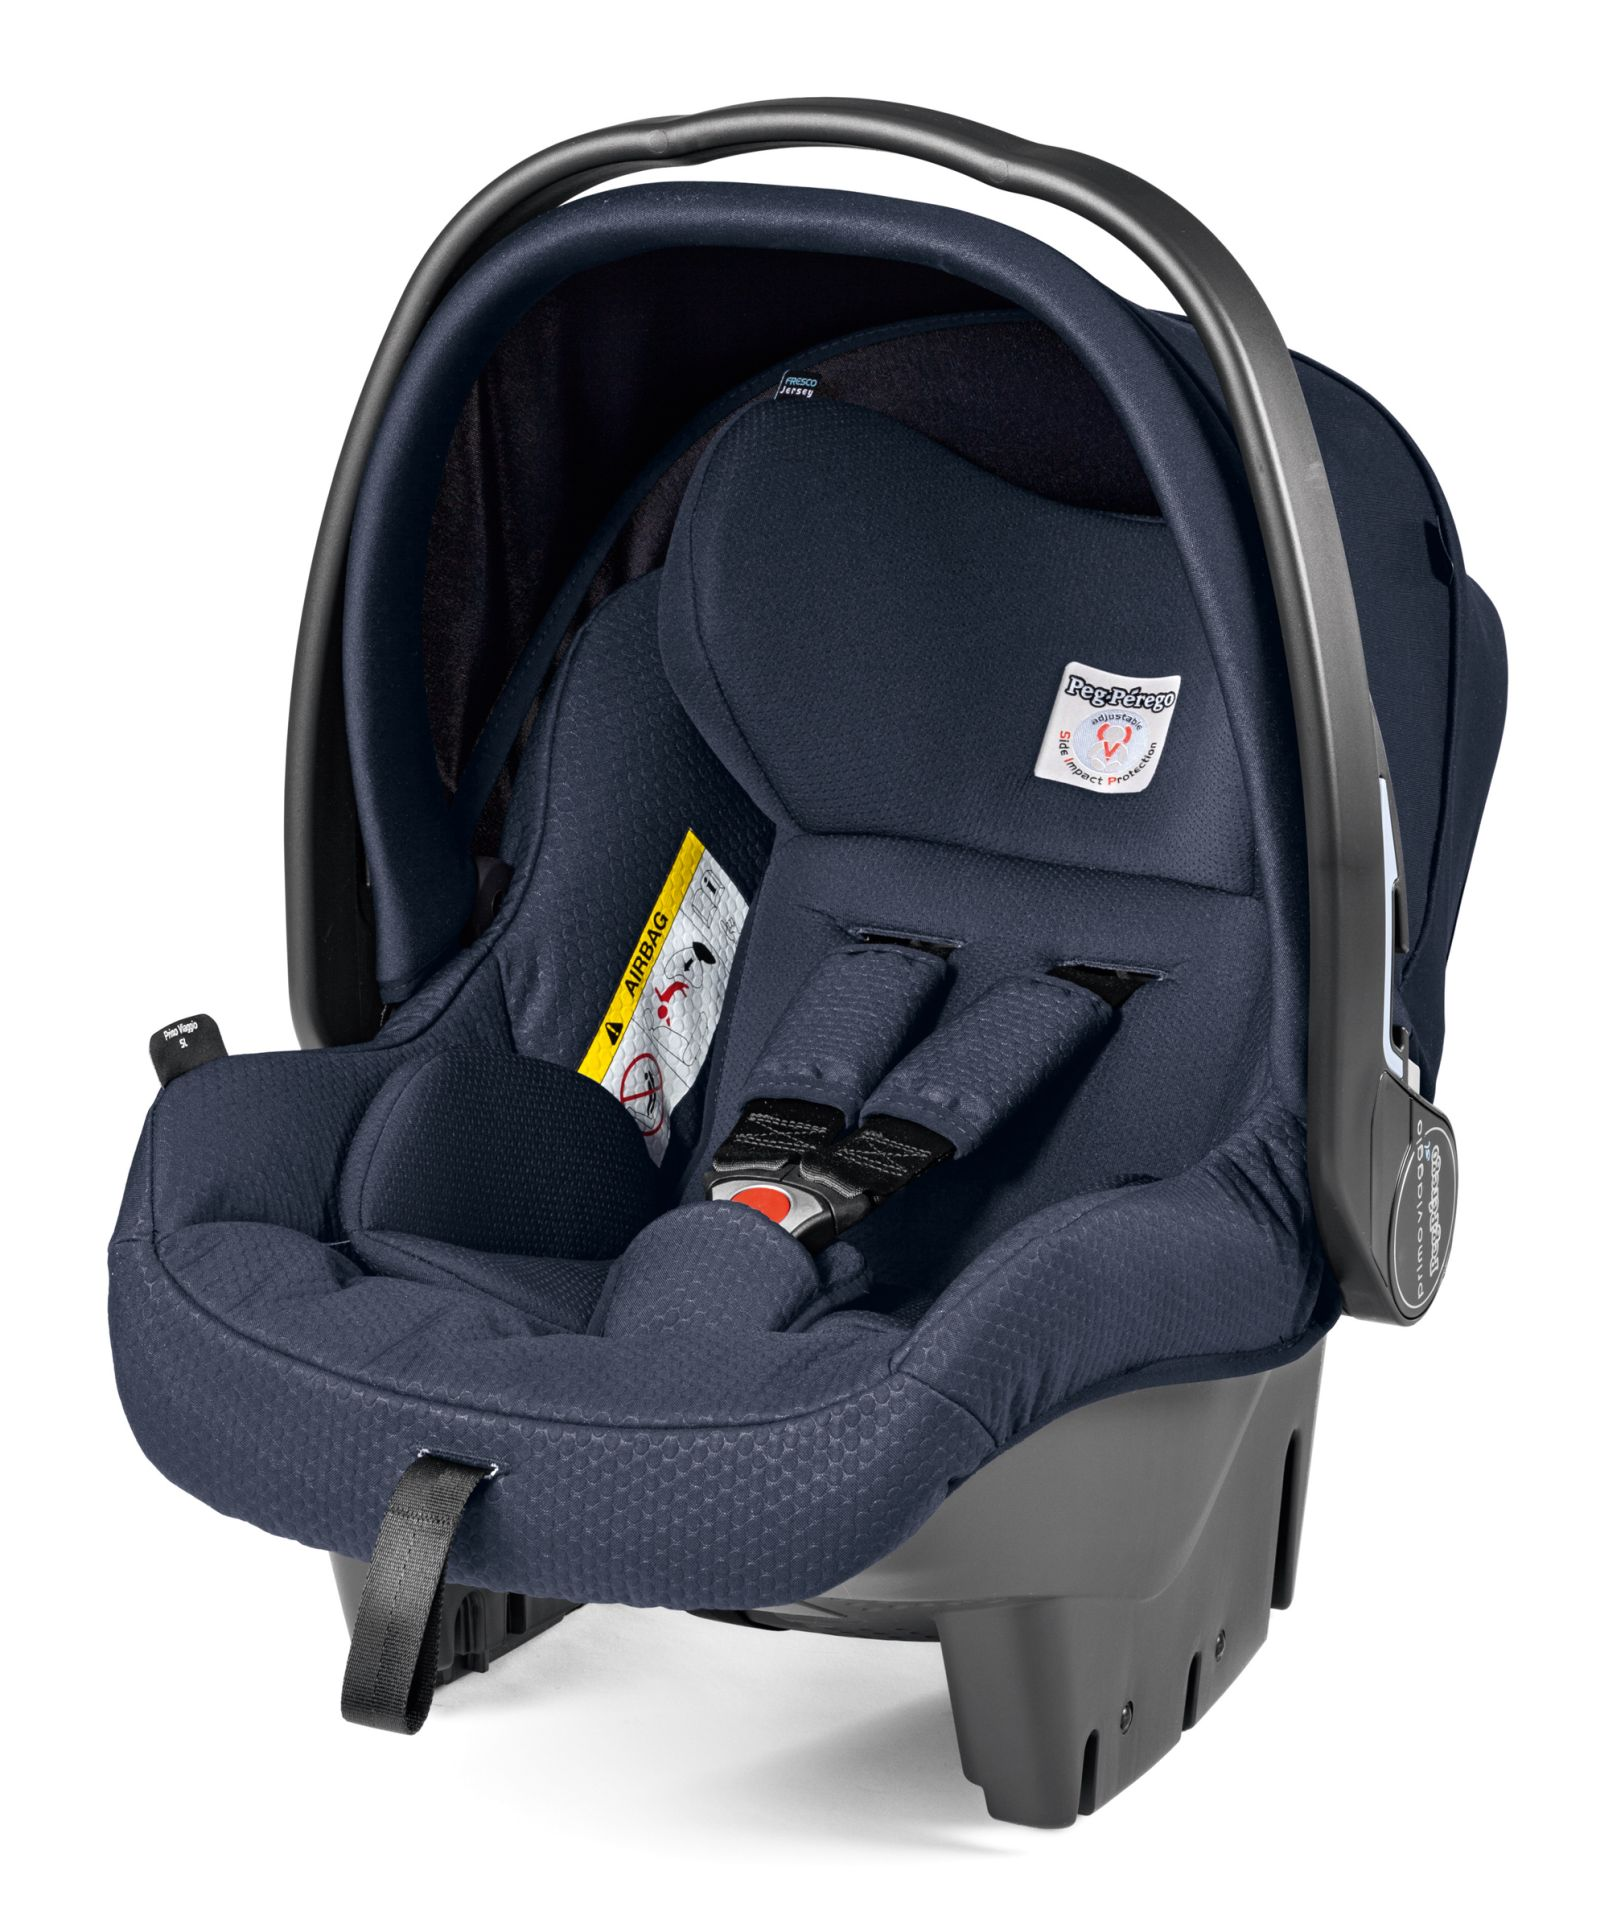 peg perego car seat primo viaggio sl velcromag. Black Bedroom Furniture Sets. Home Design Ideas